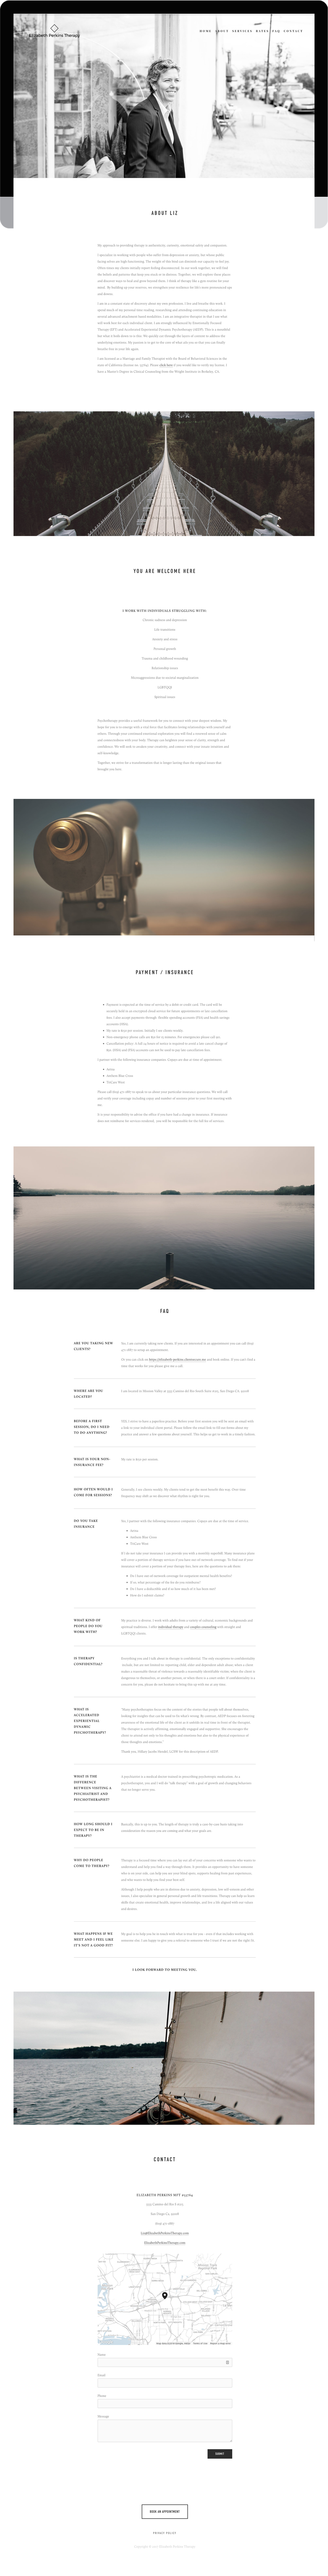 Therapist website design and development for Squarespace.